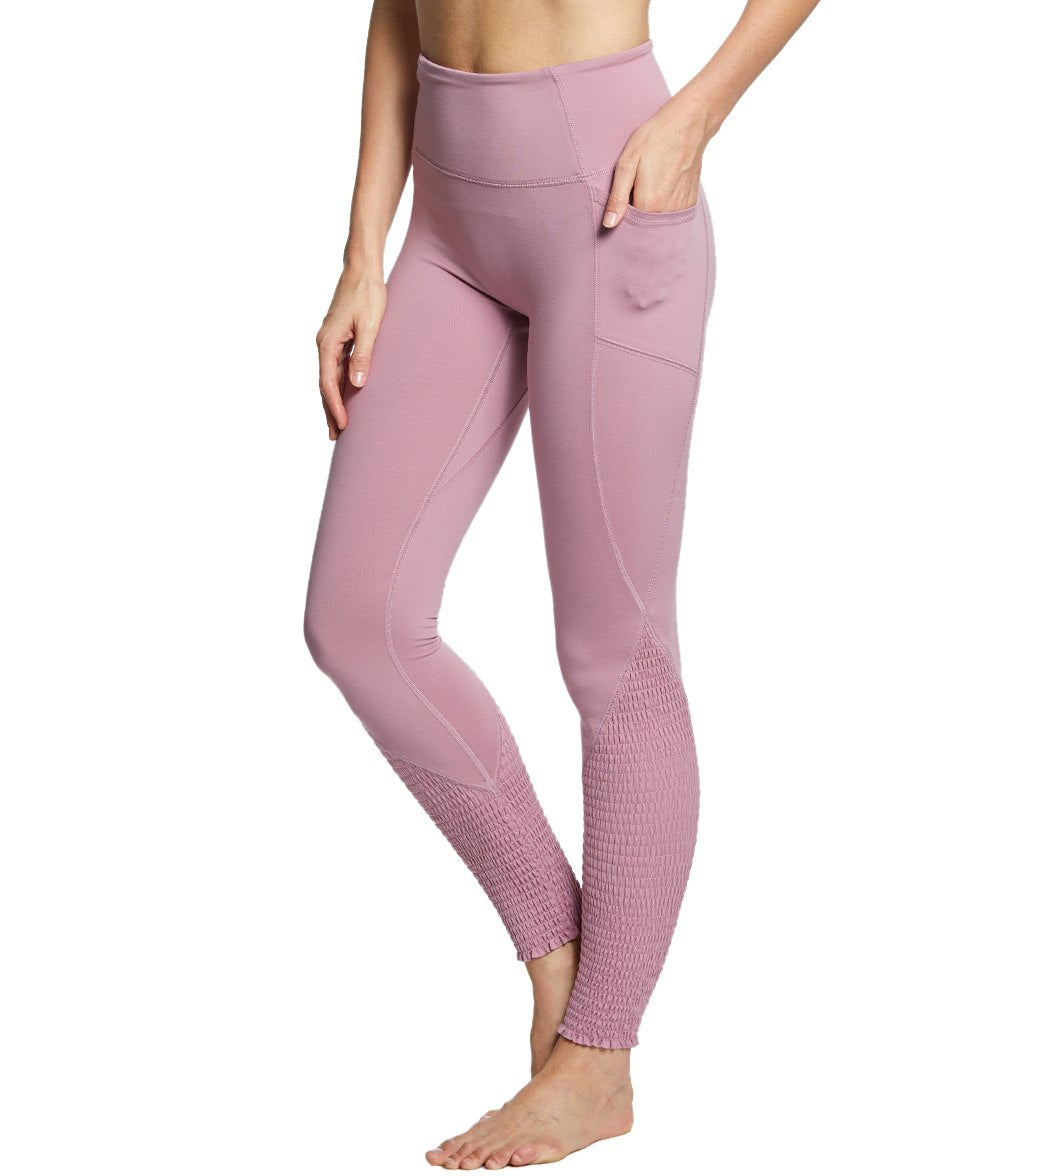 Free People Movement Time Is Now Smocked Leggings With Pockets - Mulberry Spandex